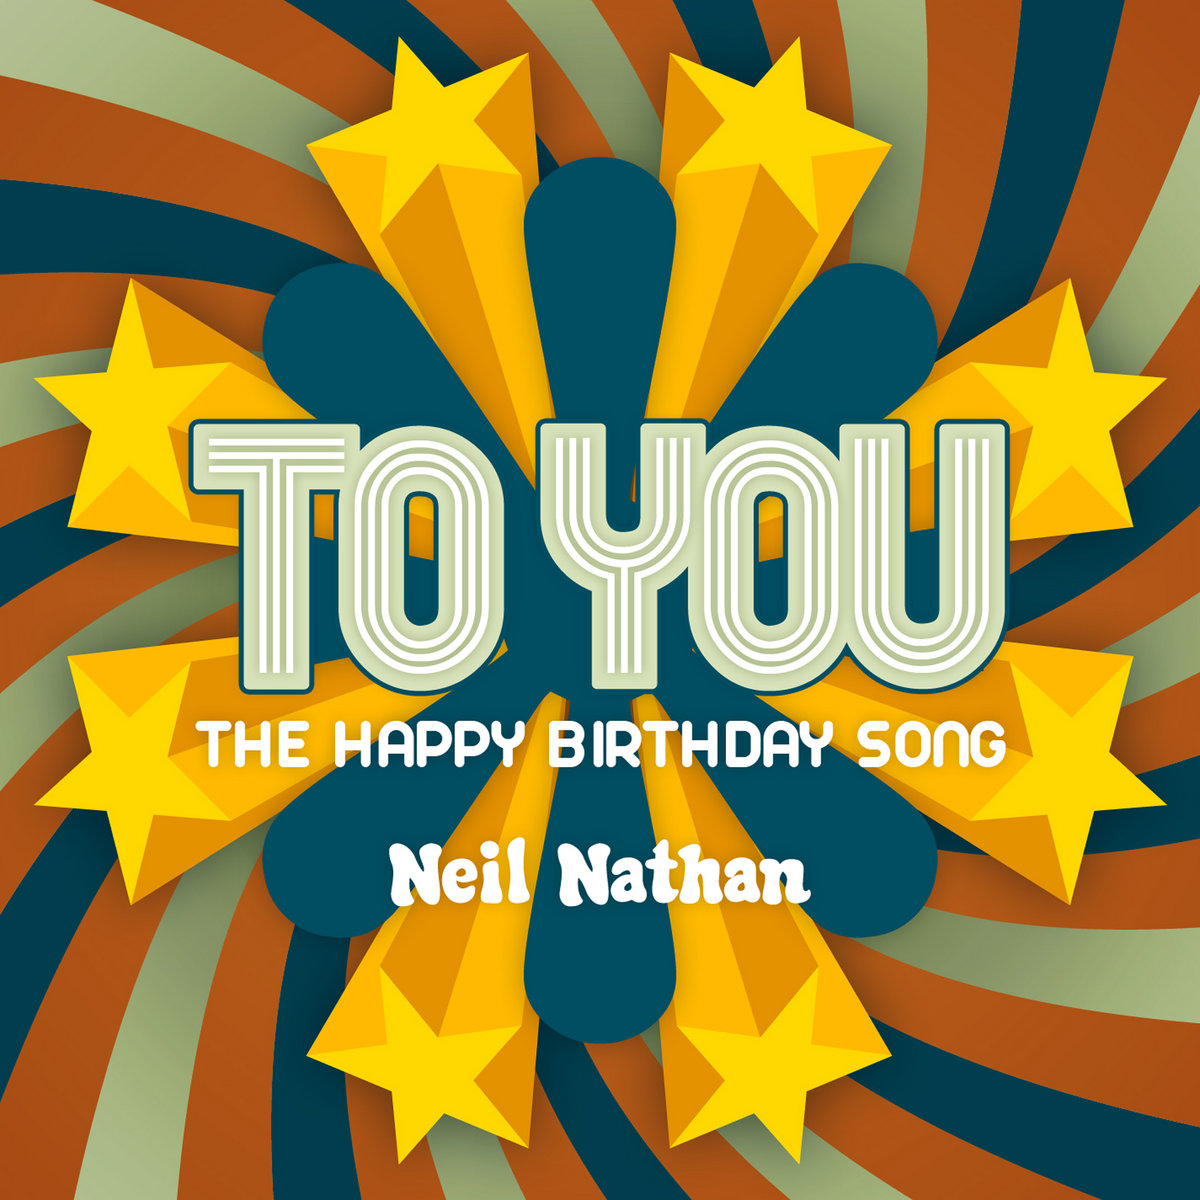 To You (The Happy Birthday Song) | Neil Nathan